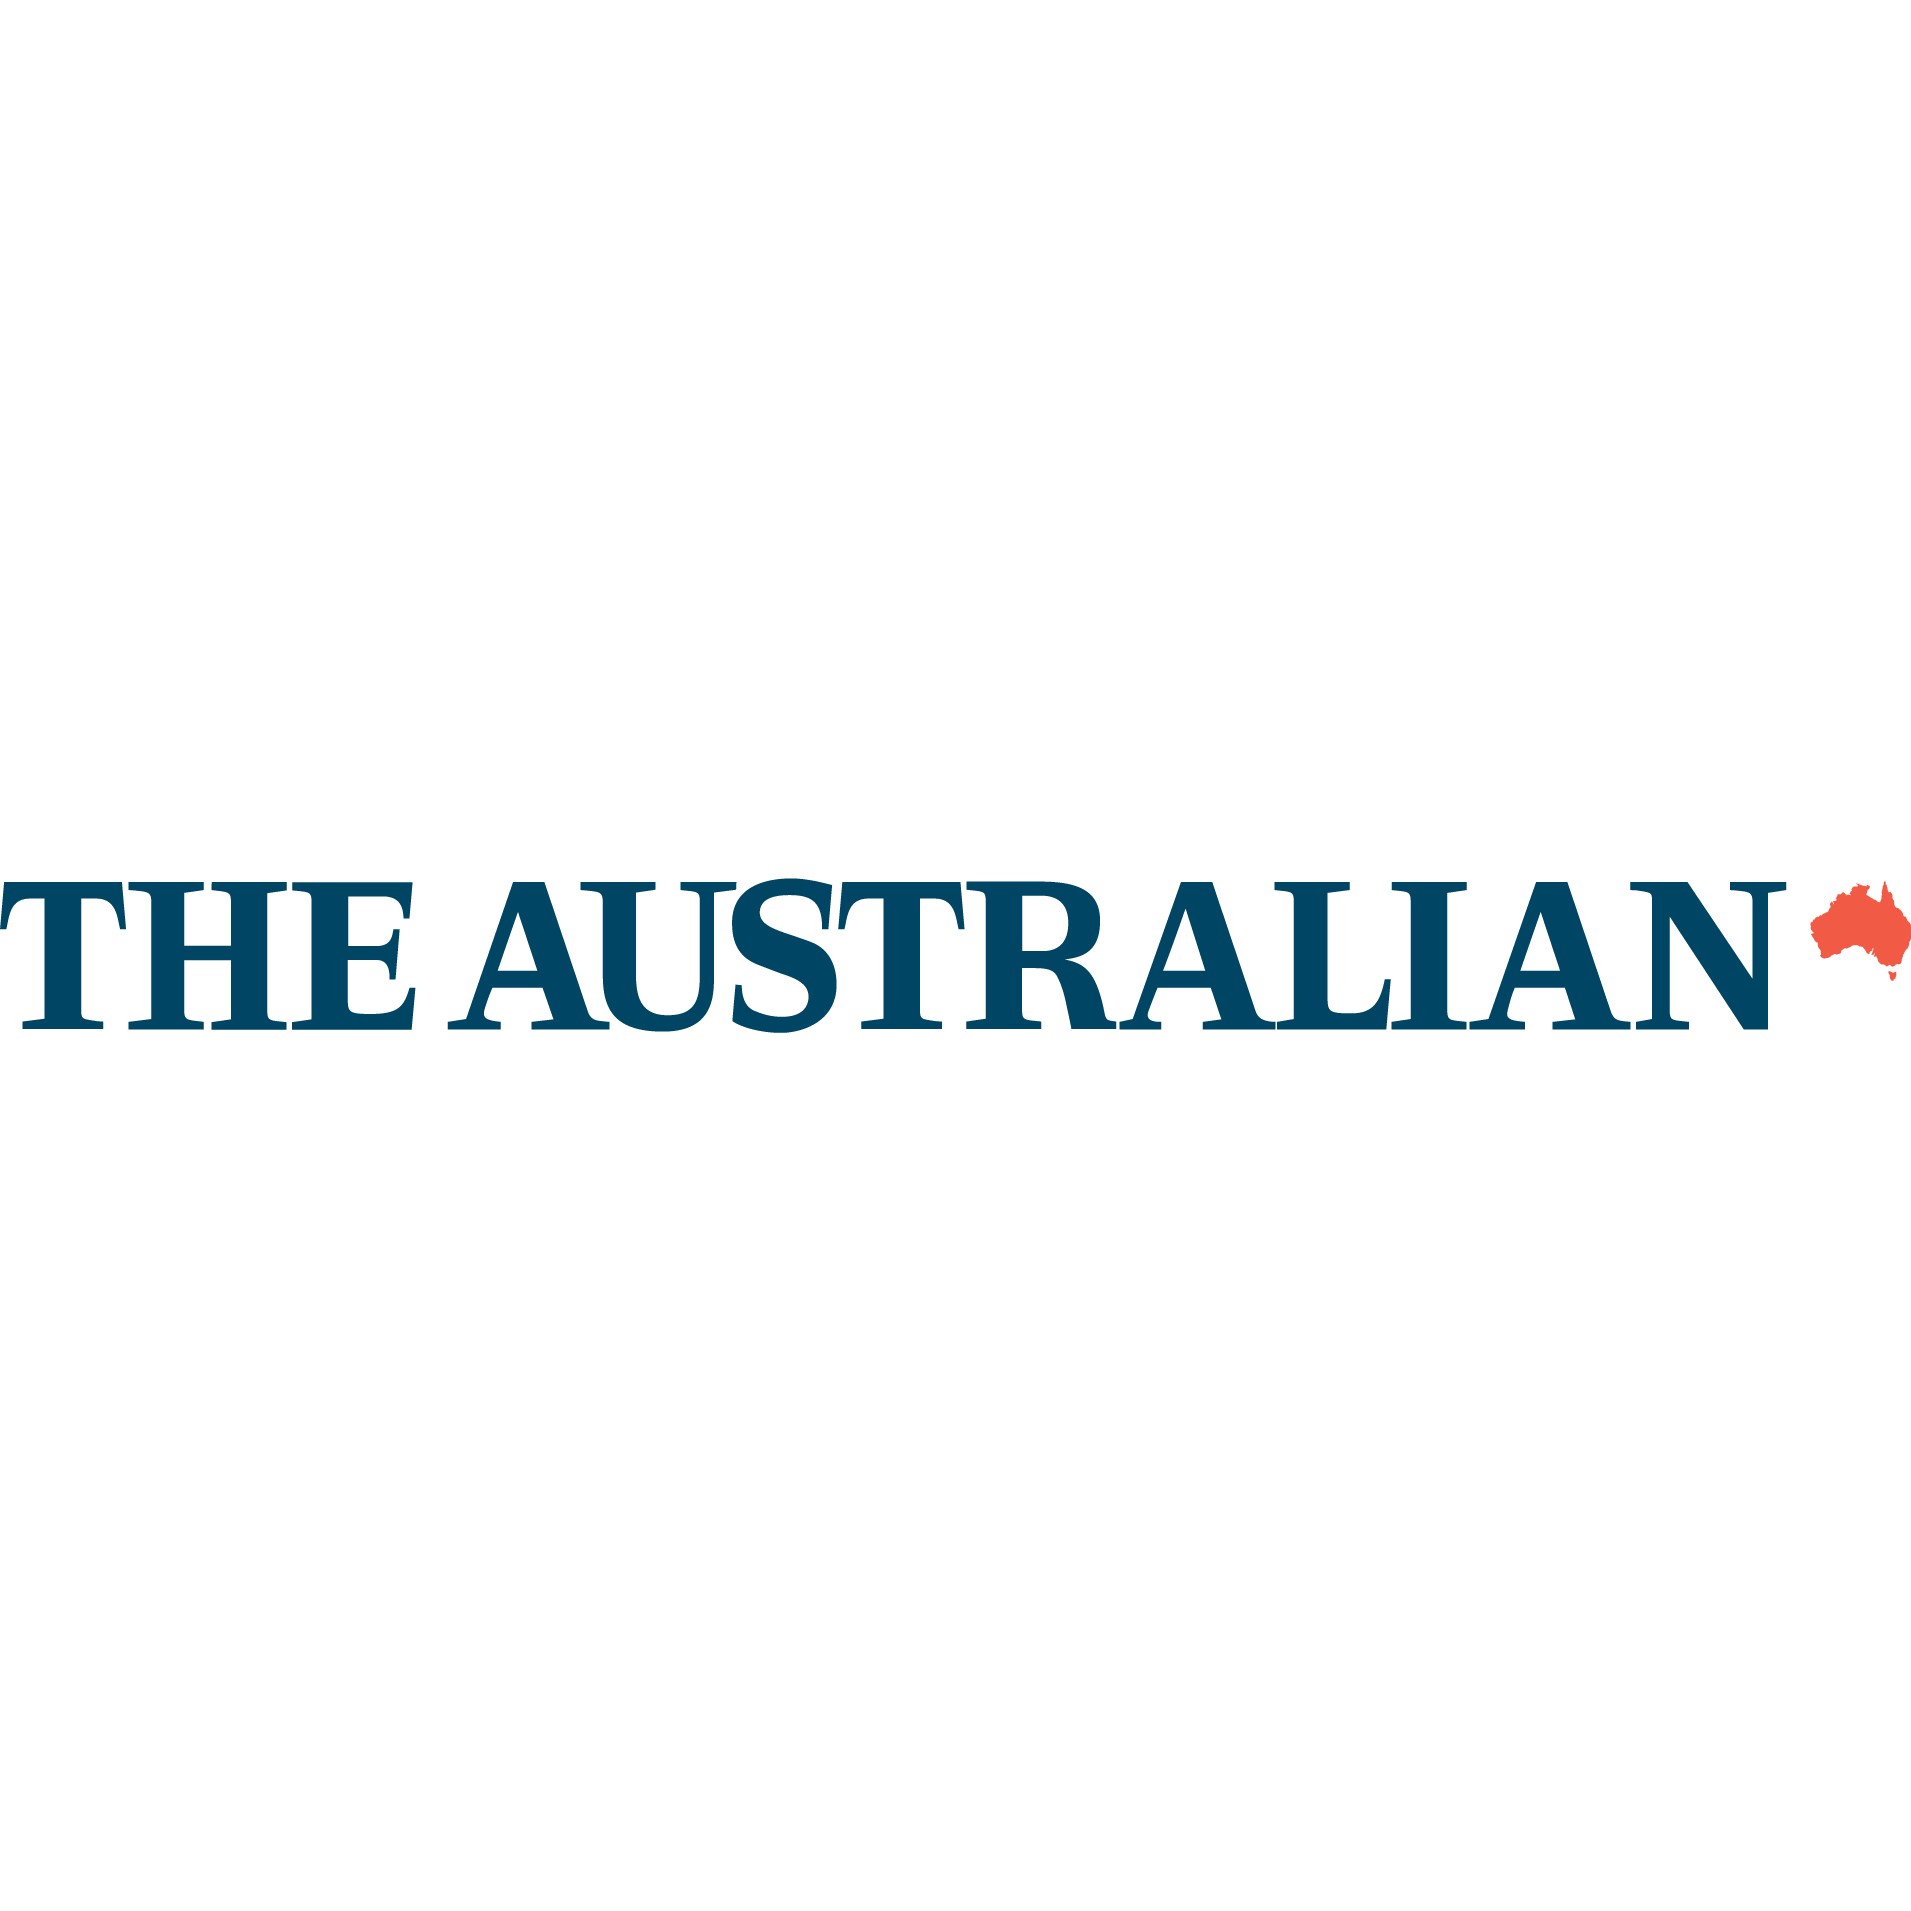 The-Australian-logo-sq.png